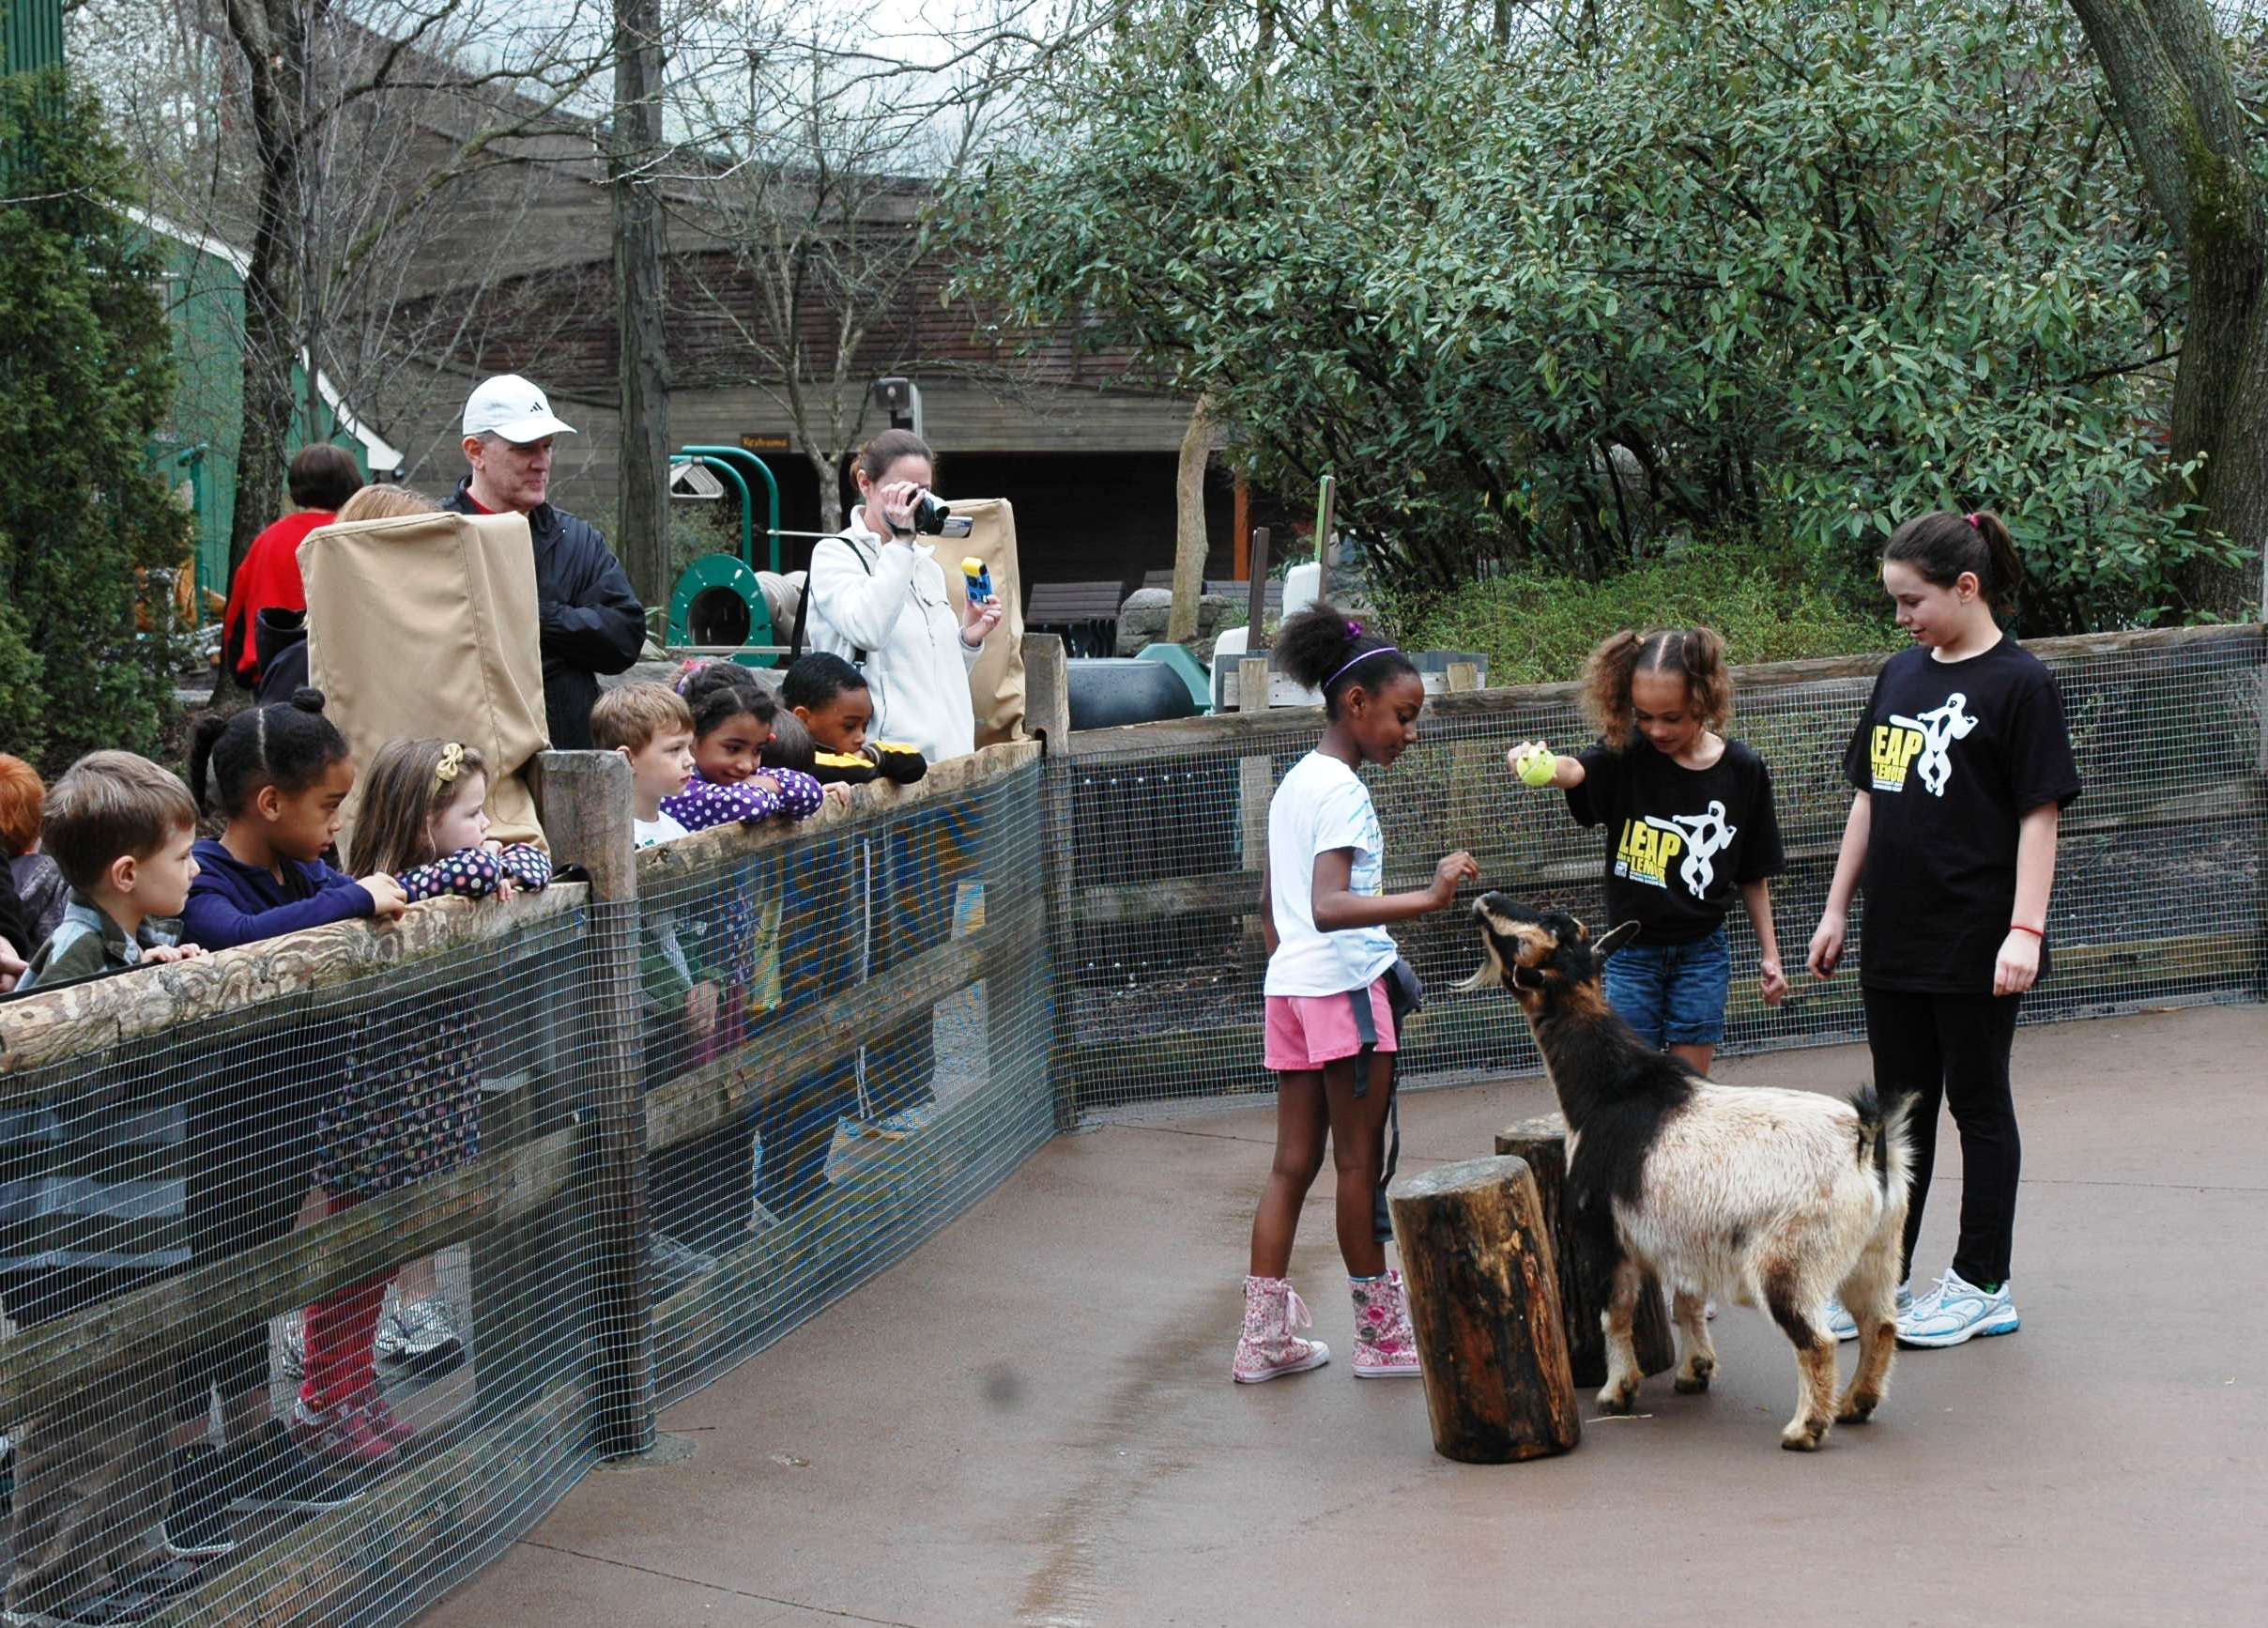 Our new animal trainers show off their goat-training skills to the younger campers.